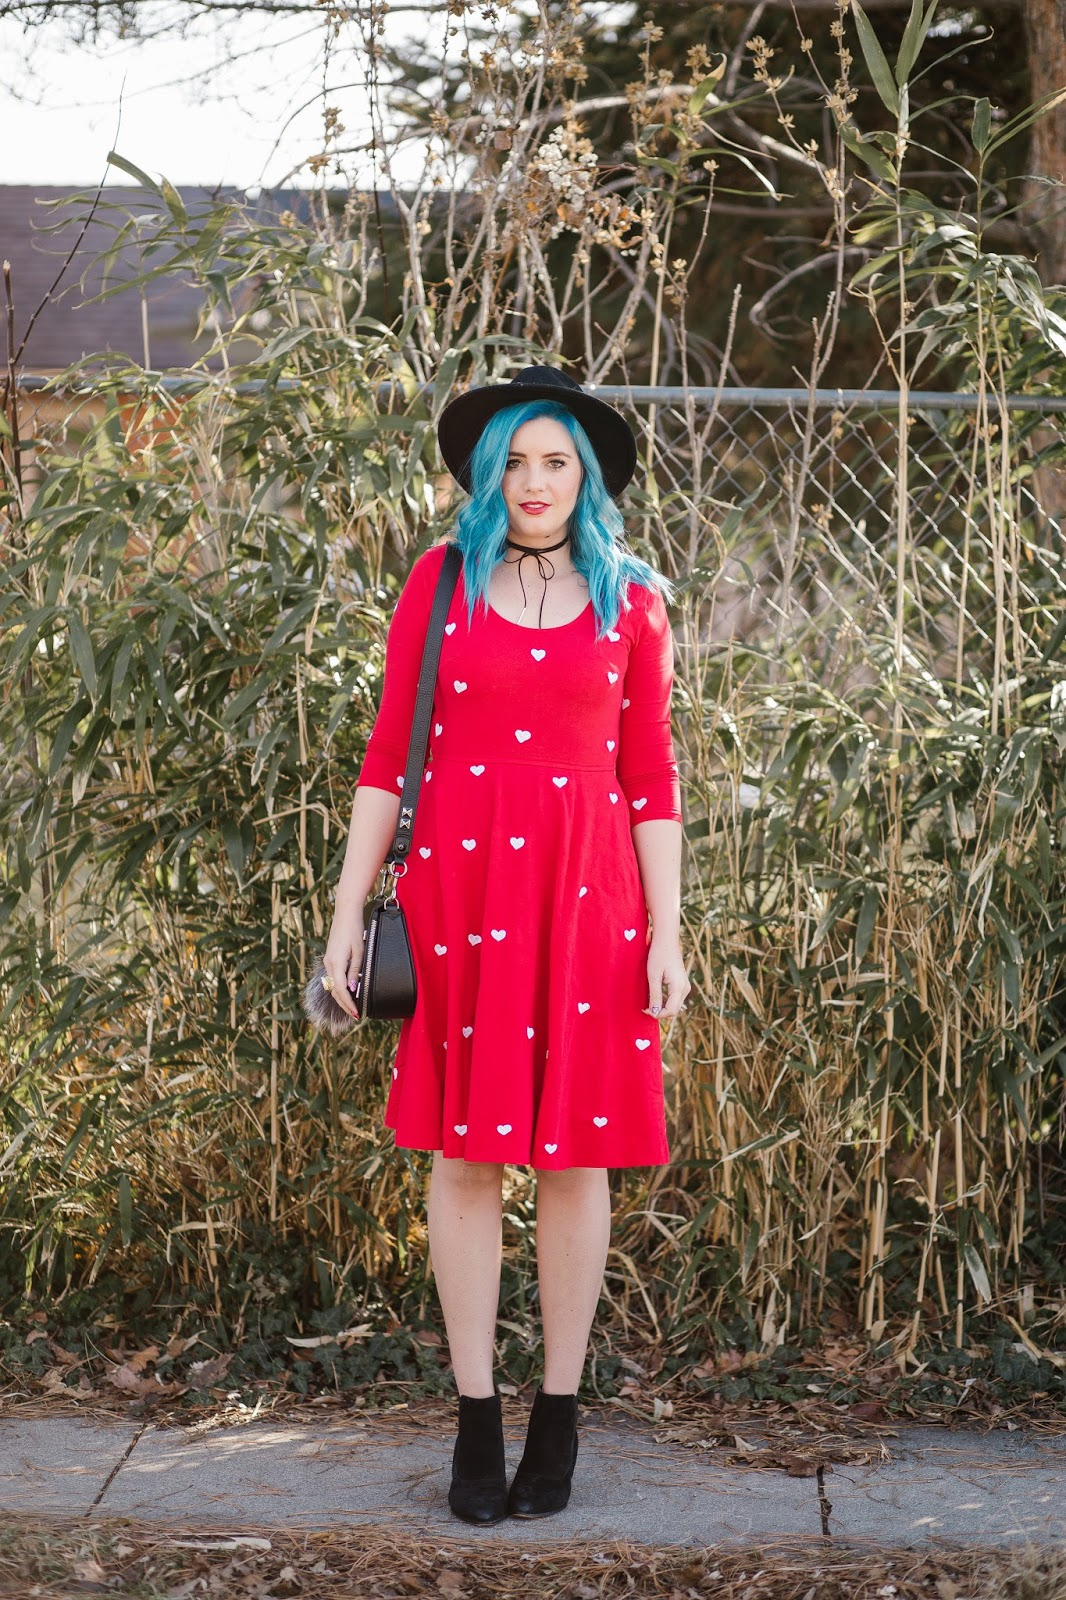 Modest Fashion Blogger, Blue Hair, Bright Outfit